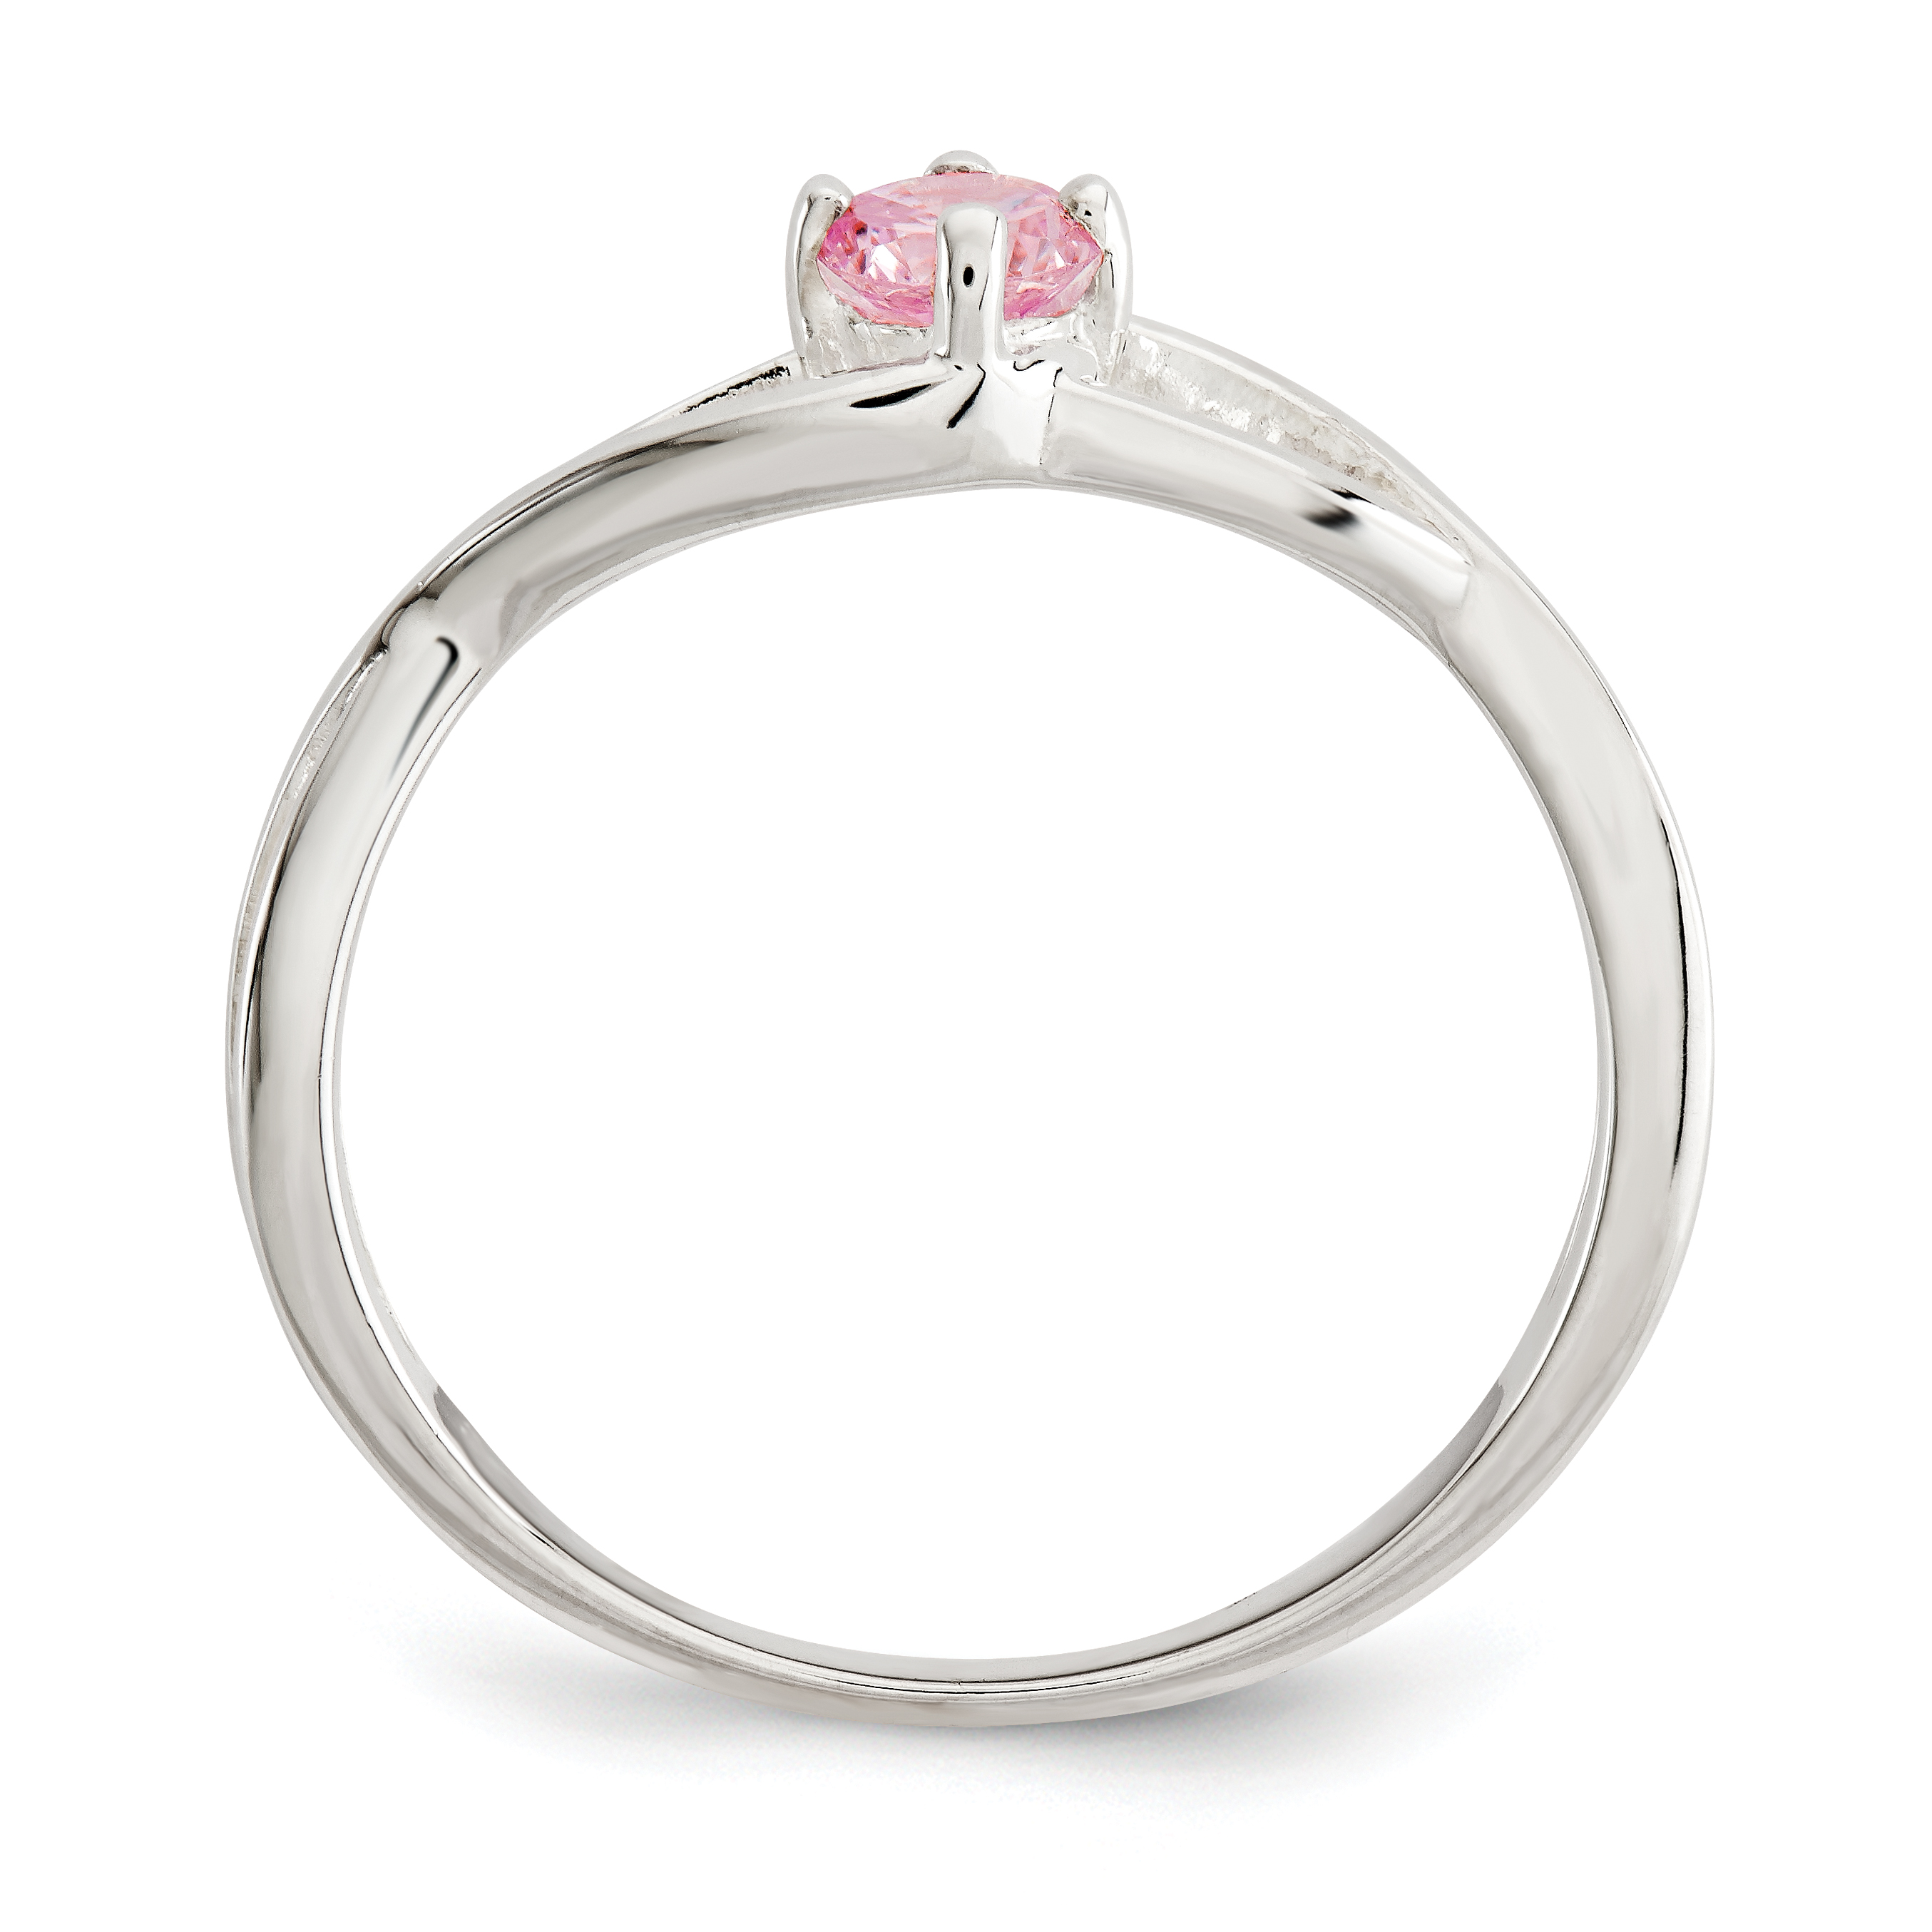 925 Sterling Silver Pink Cubic Zirconia Cz Sol Band Ring Size 6.00 Fine Jewelry Gifts For Women For Her - image 1 of 3